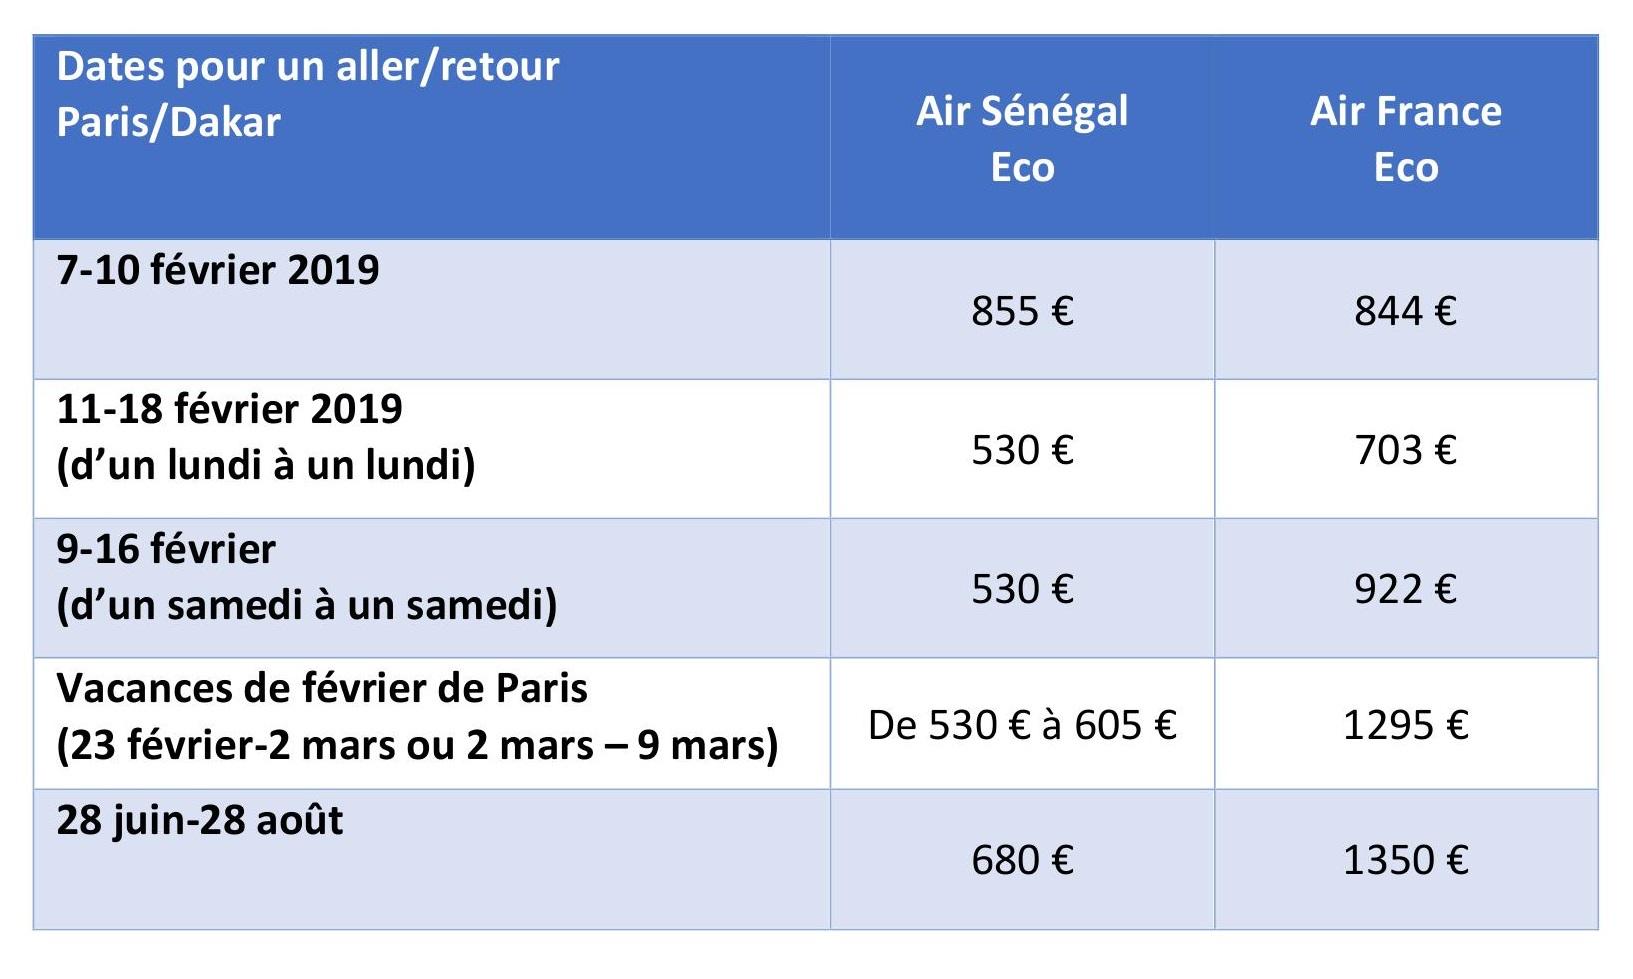 air sénégal air france comparaison tarifs paris dakar